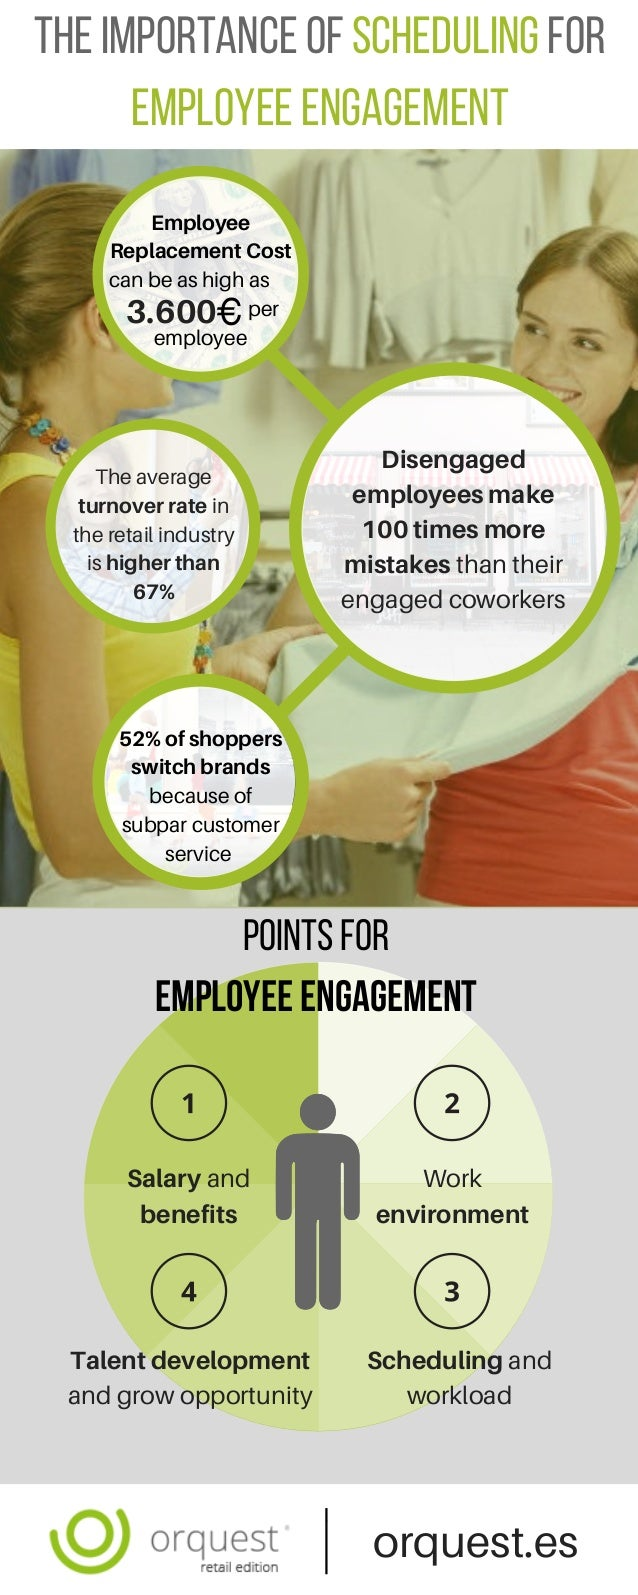 The average turnover rate in the retail industry is higher than 67% Employee Replacement Cost can be as high as per employ...